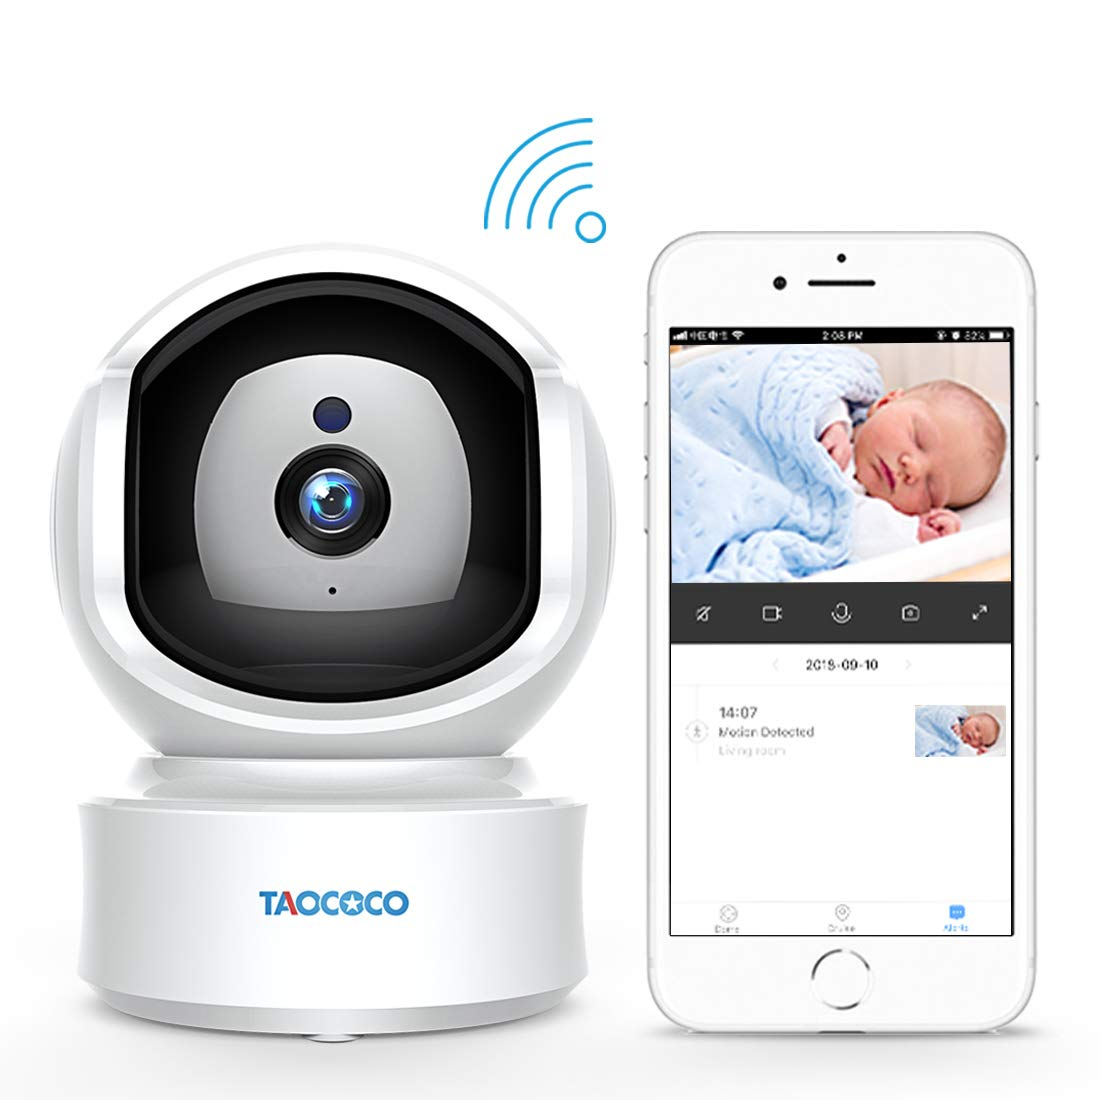 Baby Monitor Camera, Taococo IP Camera Wireless 1080P HD Home Security Camera for Baby Elder Pet Dog Monitor with Pan/Tilt Two-Way Audio,Night Vision,Motion Detection and Phone App Remote Control by FREDI (Image #1)